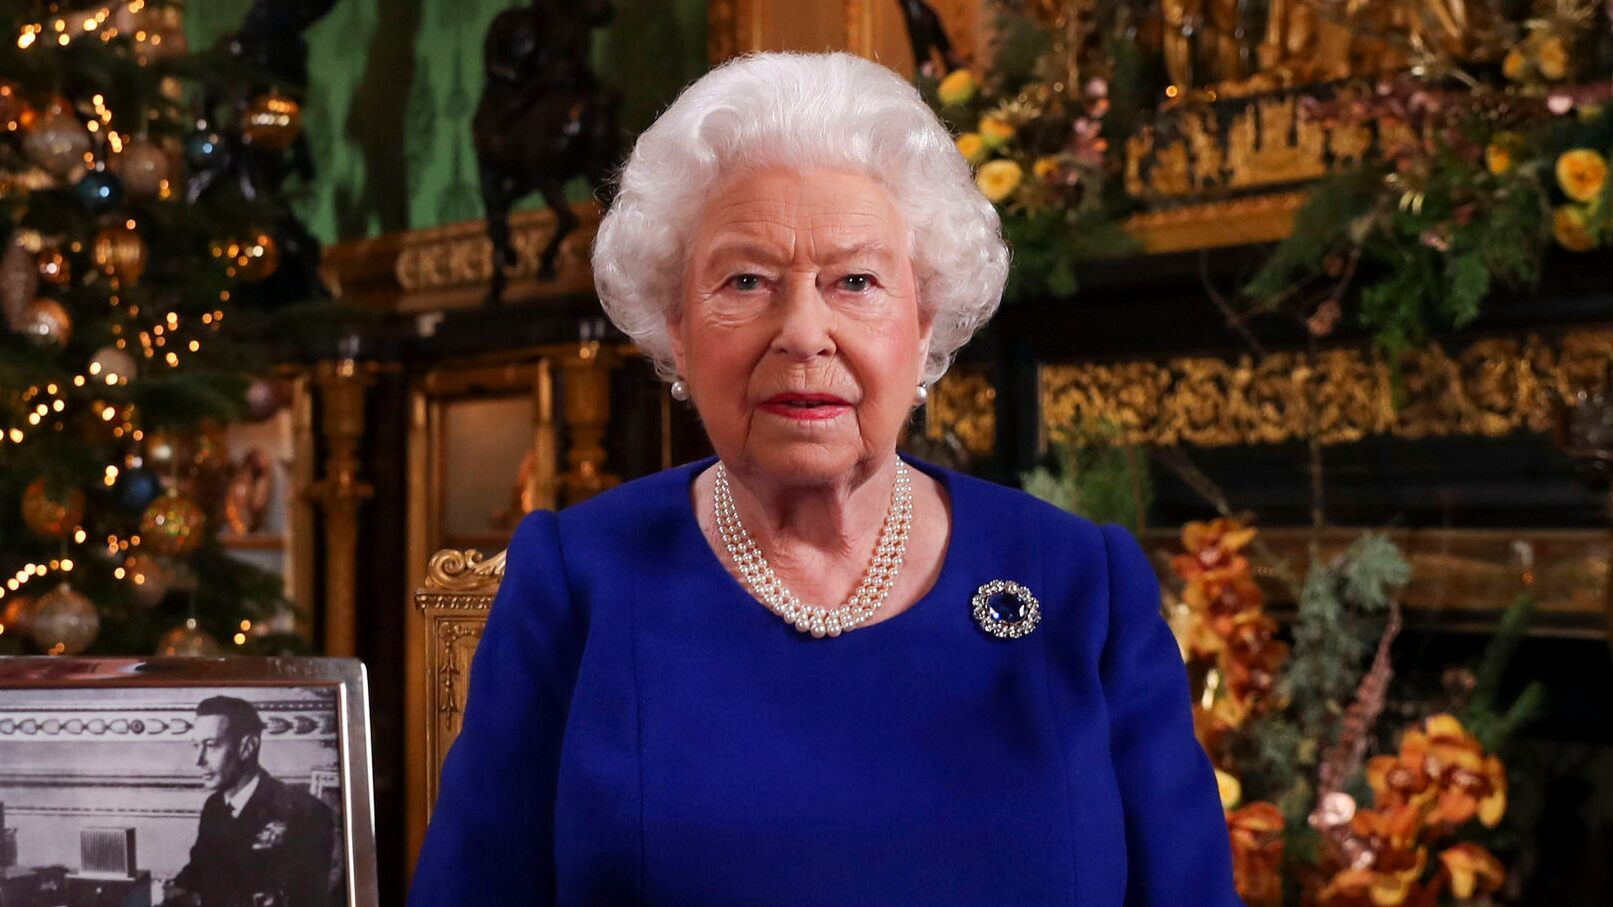 Queen Christmas Address 2020 Queen Elizabeth remembers 'quite bumpy' year in annual Christmas